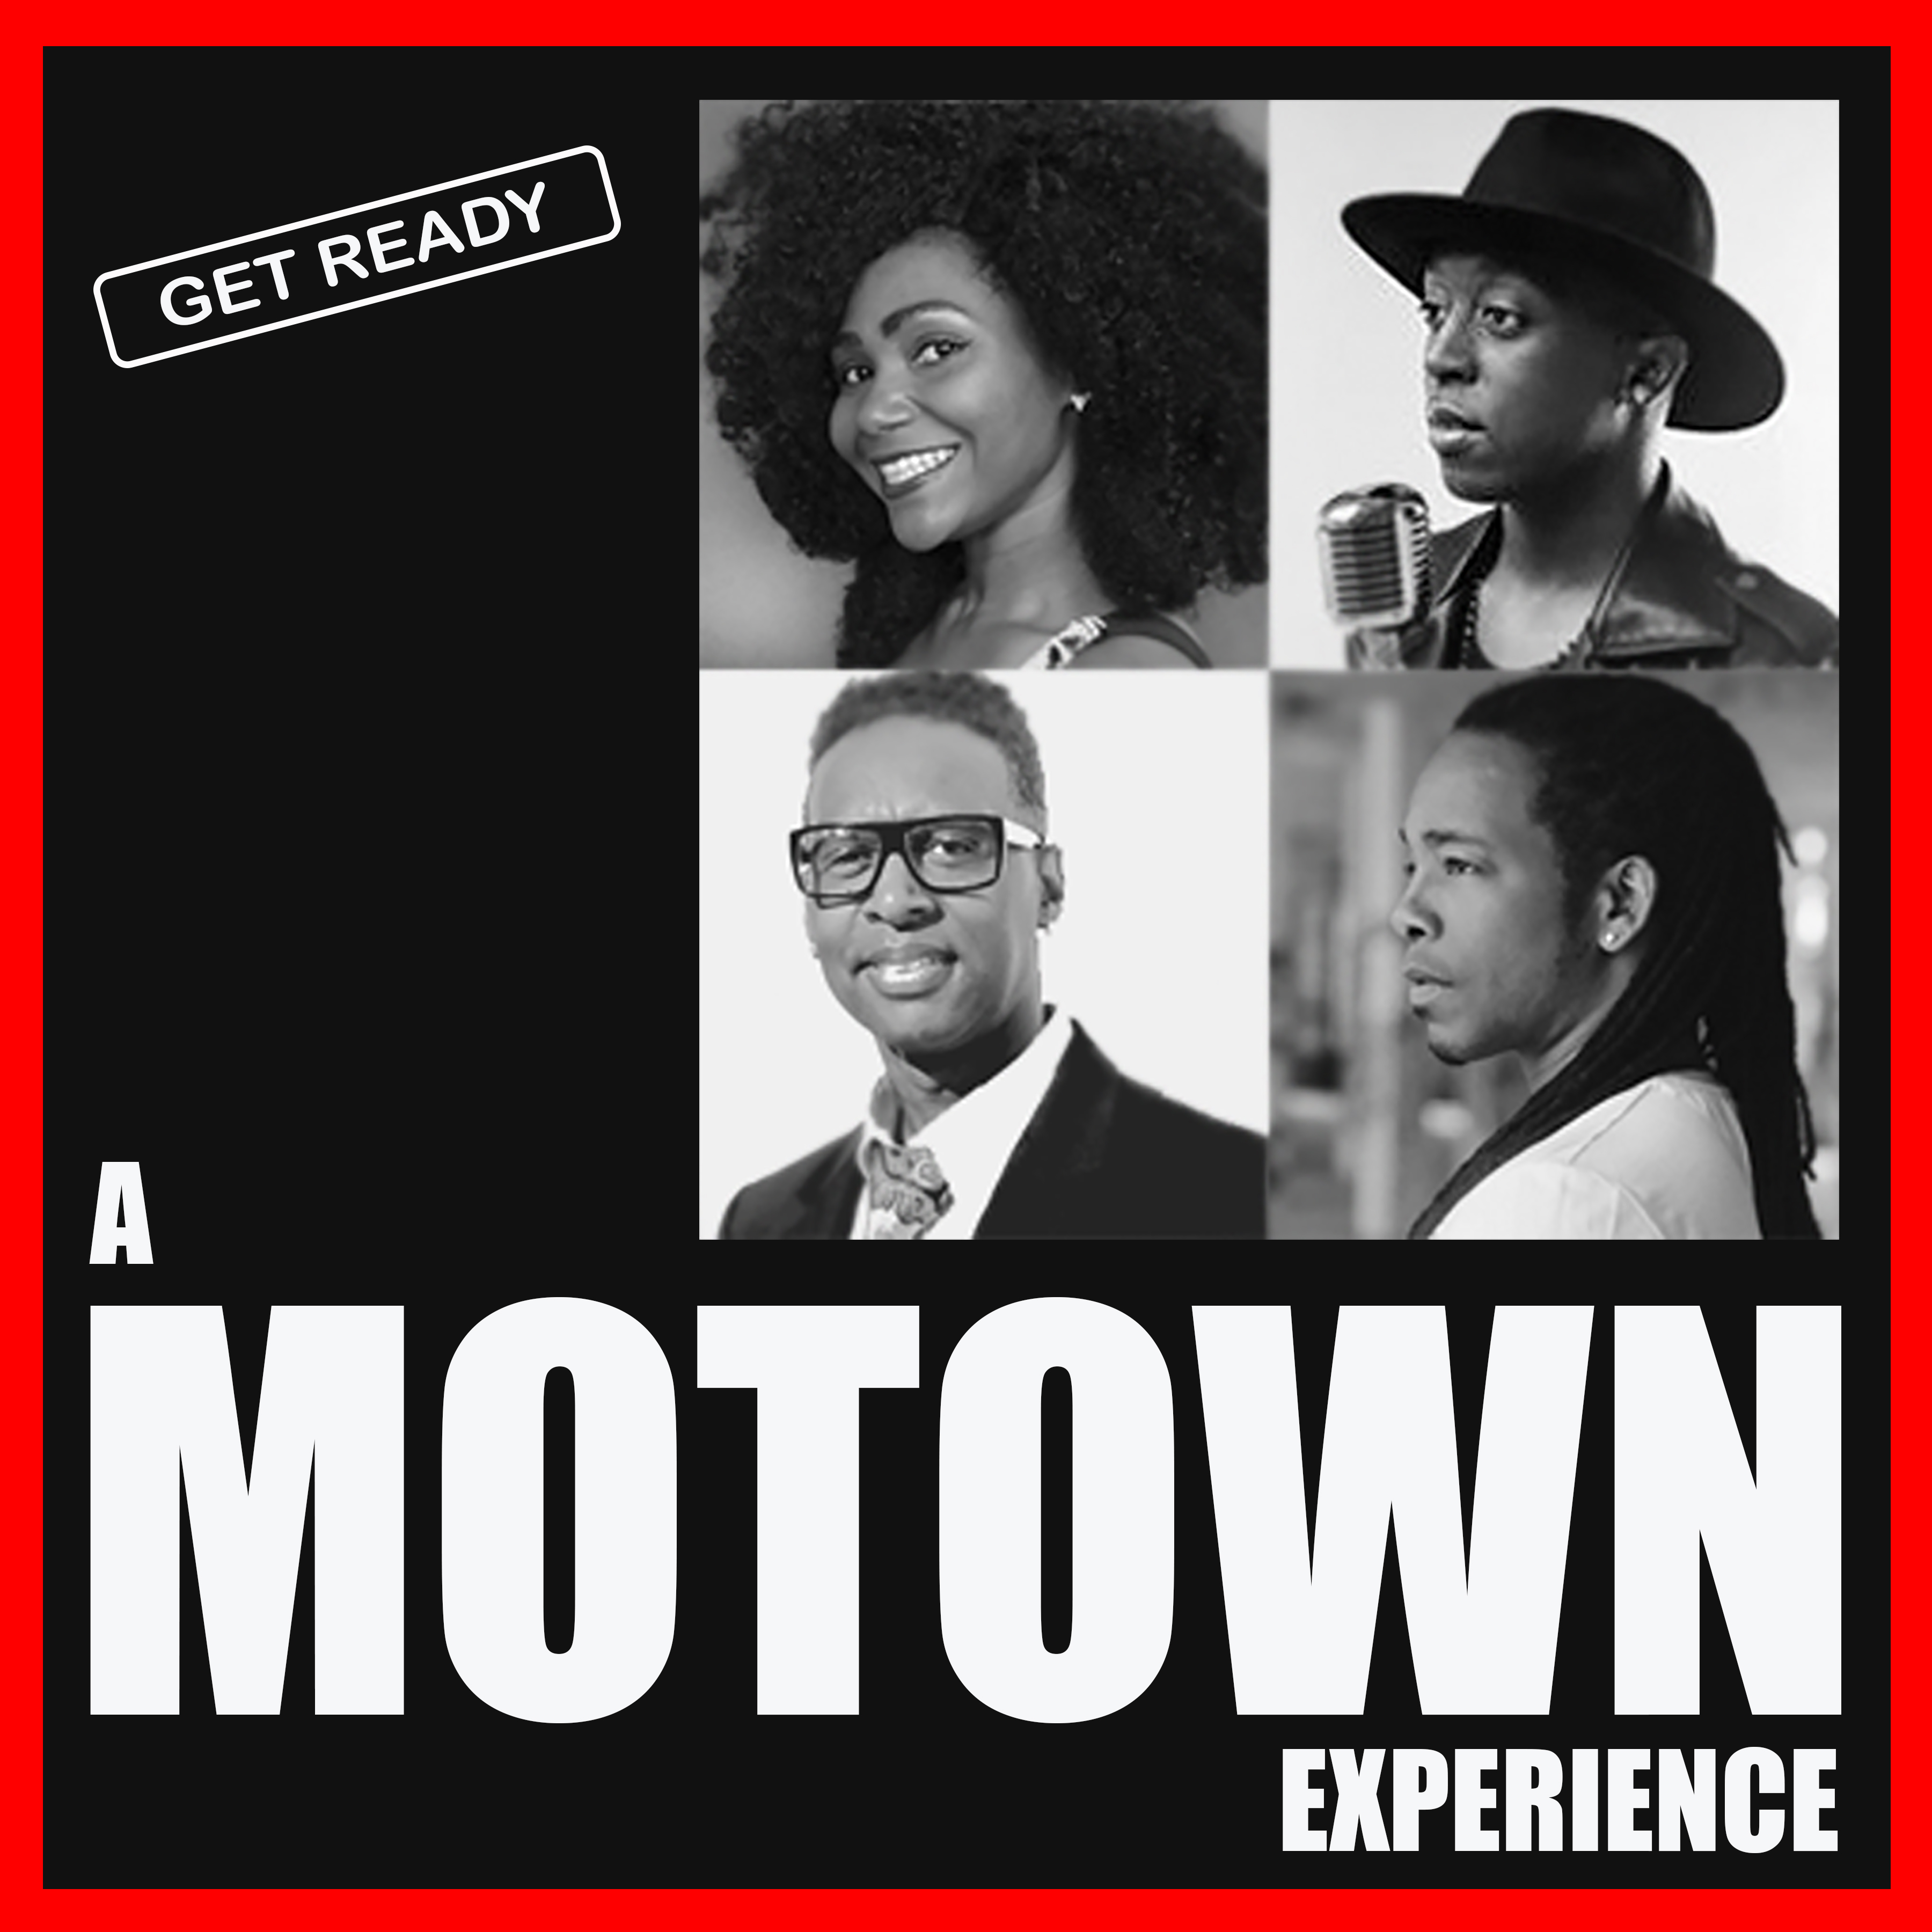 GET READY - A Motown Experience - Taking Motown to a New Level